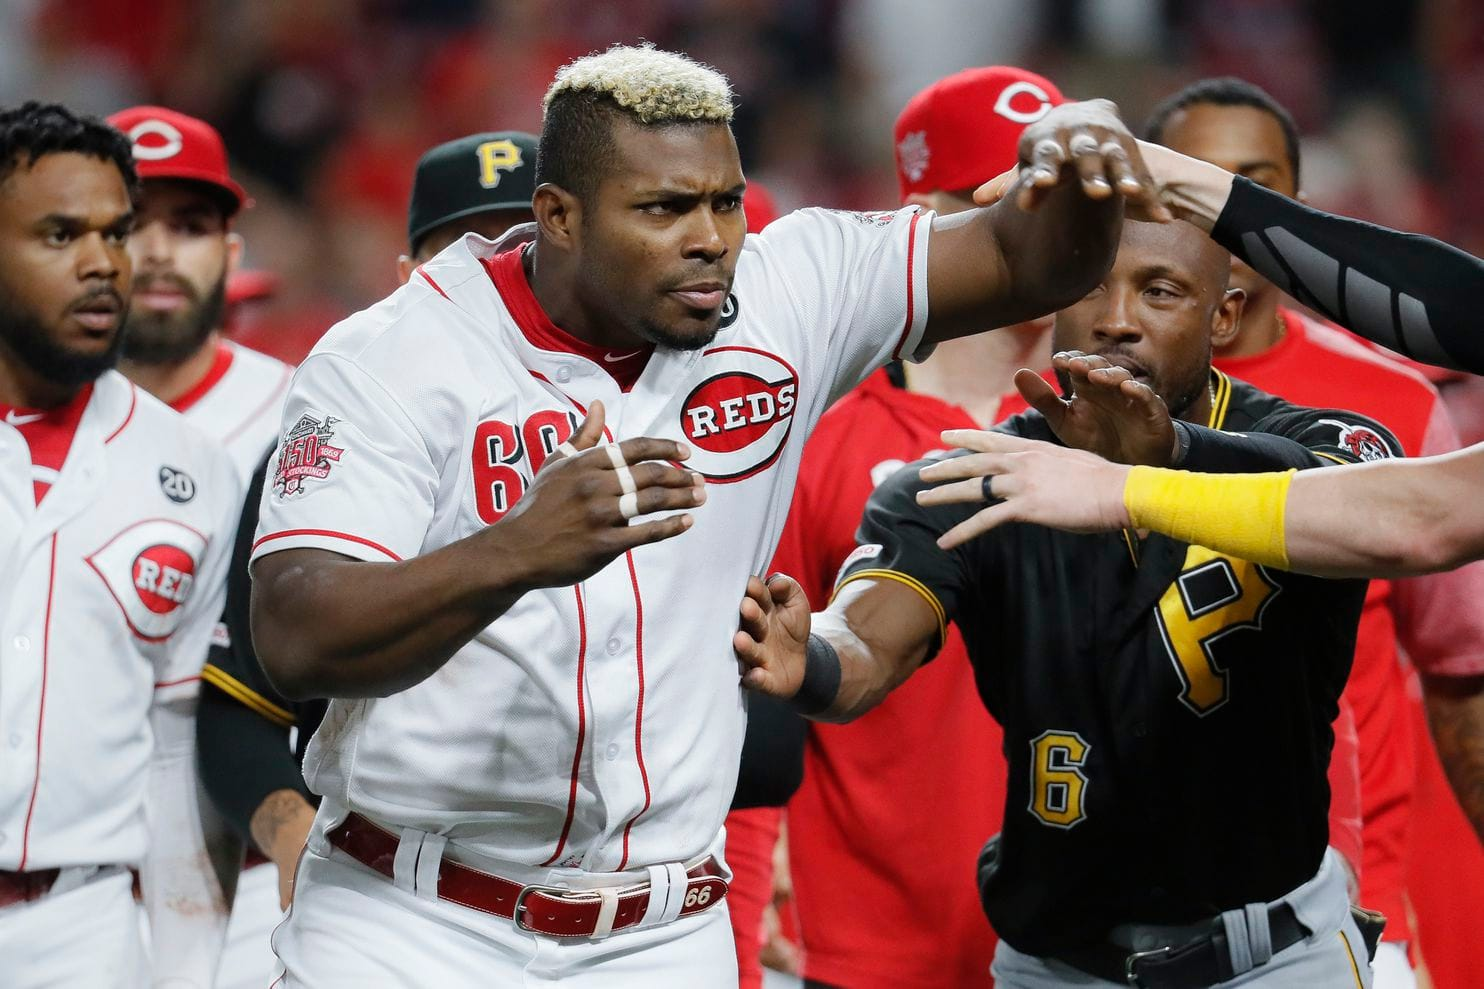 Yasiel Puig, traded to Indians, gets in a brawl in the final game with Reds